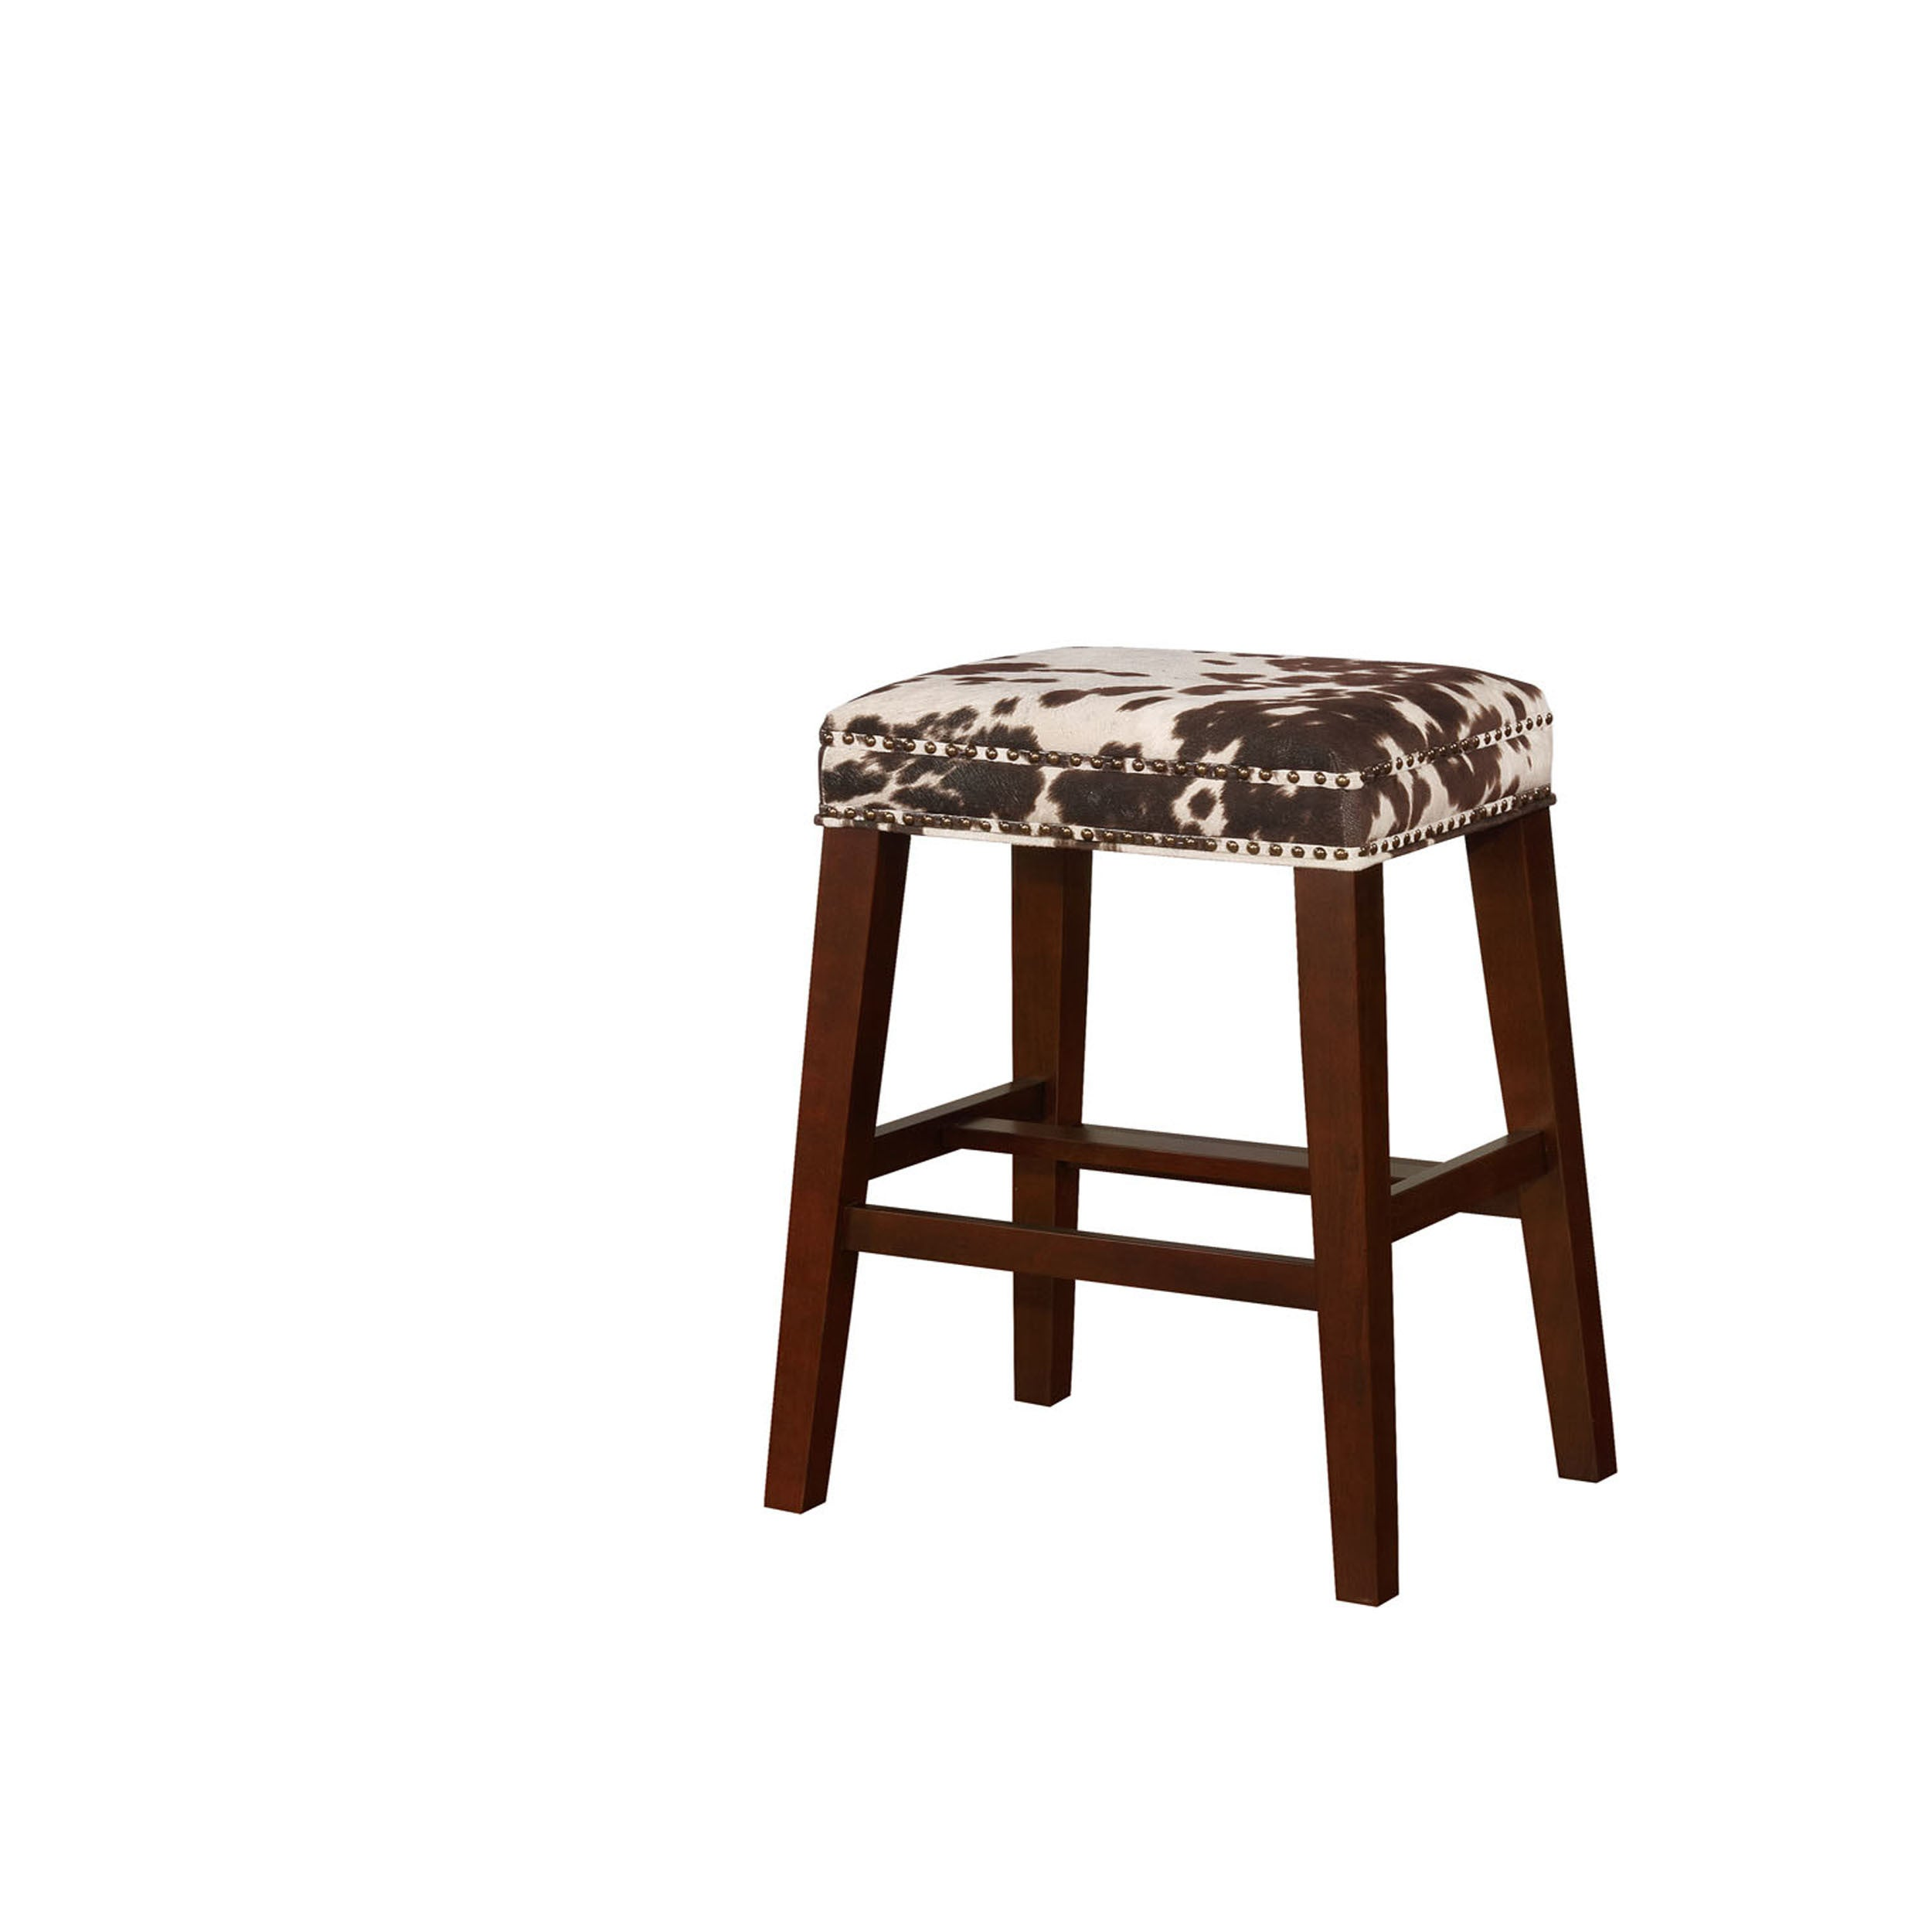 Phenomenal Linon Ian Brown Cow Print Bar Stool Unemploymentrelief Wooden Chair Designs For Living Room Unemploymentrelieforg